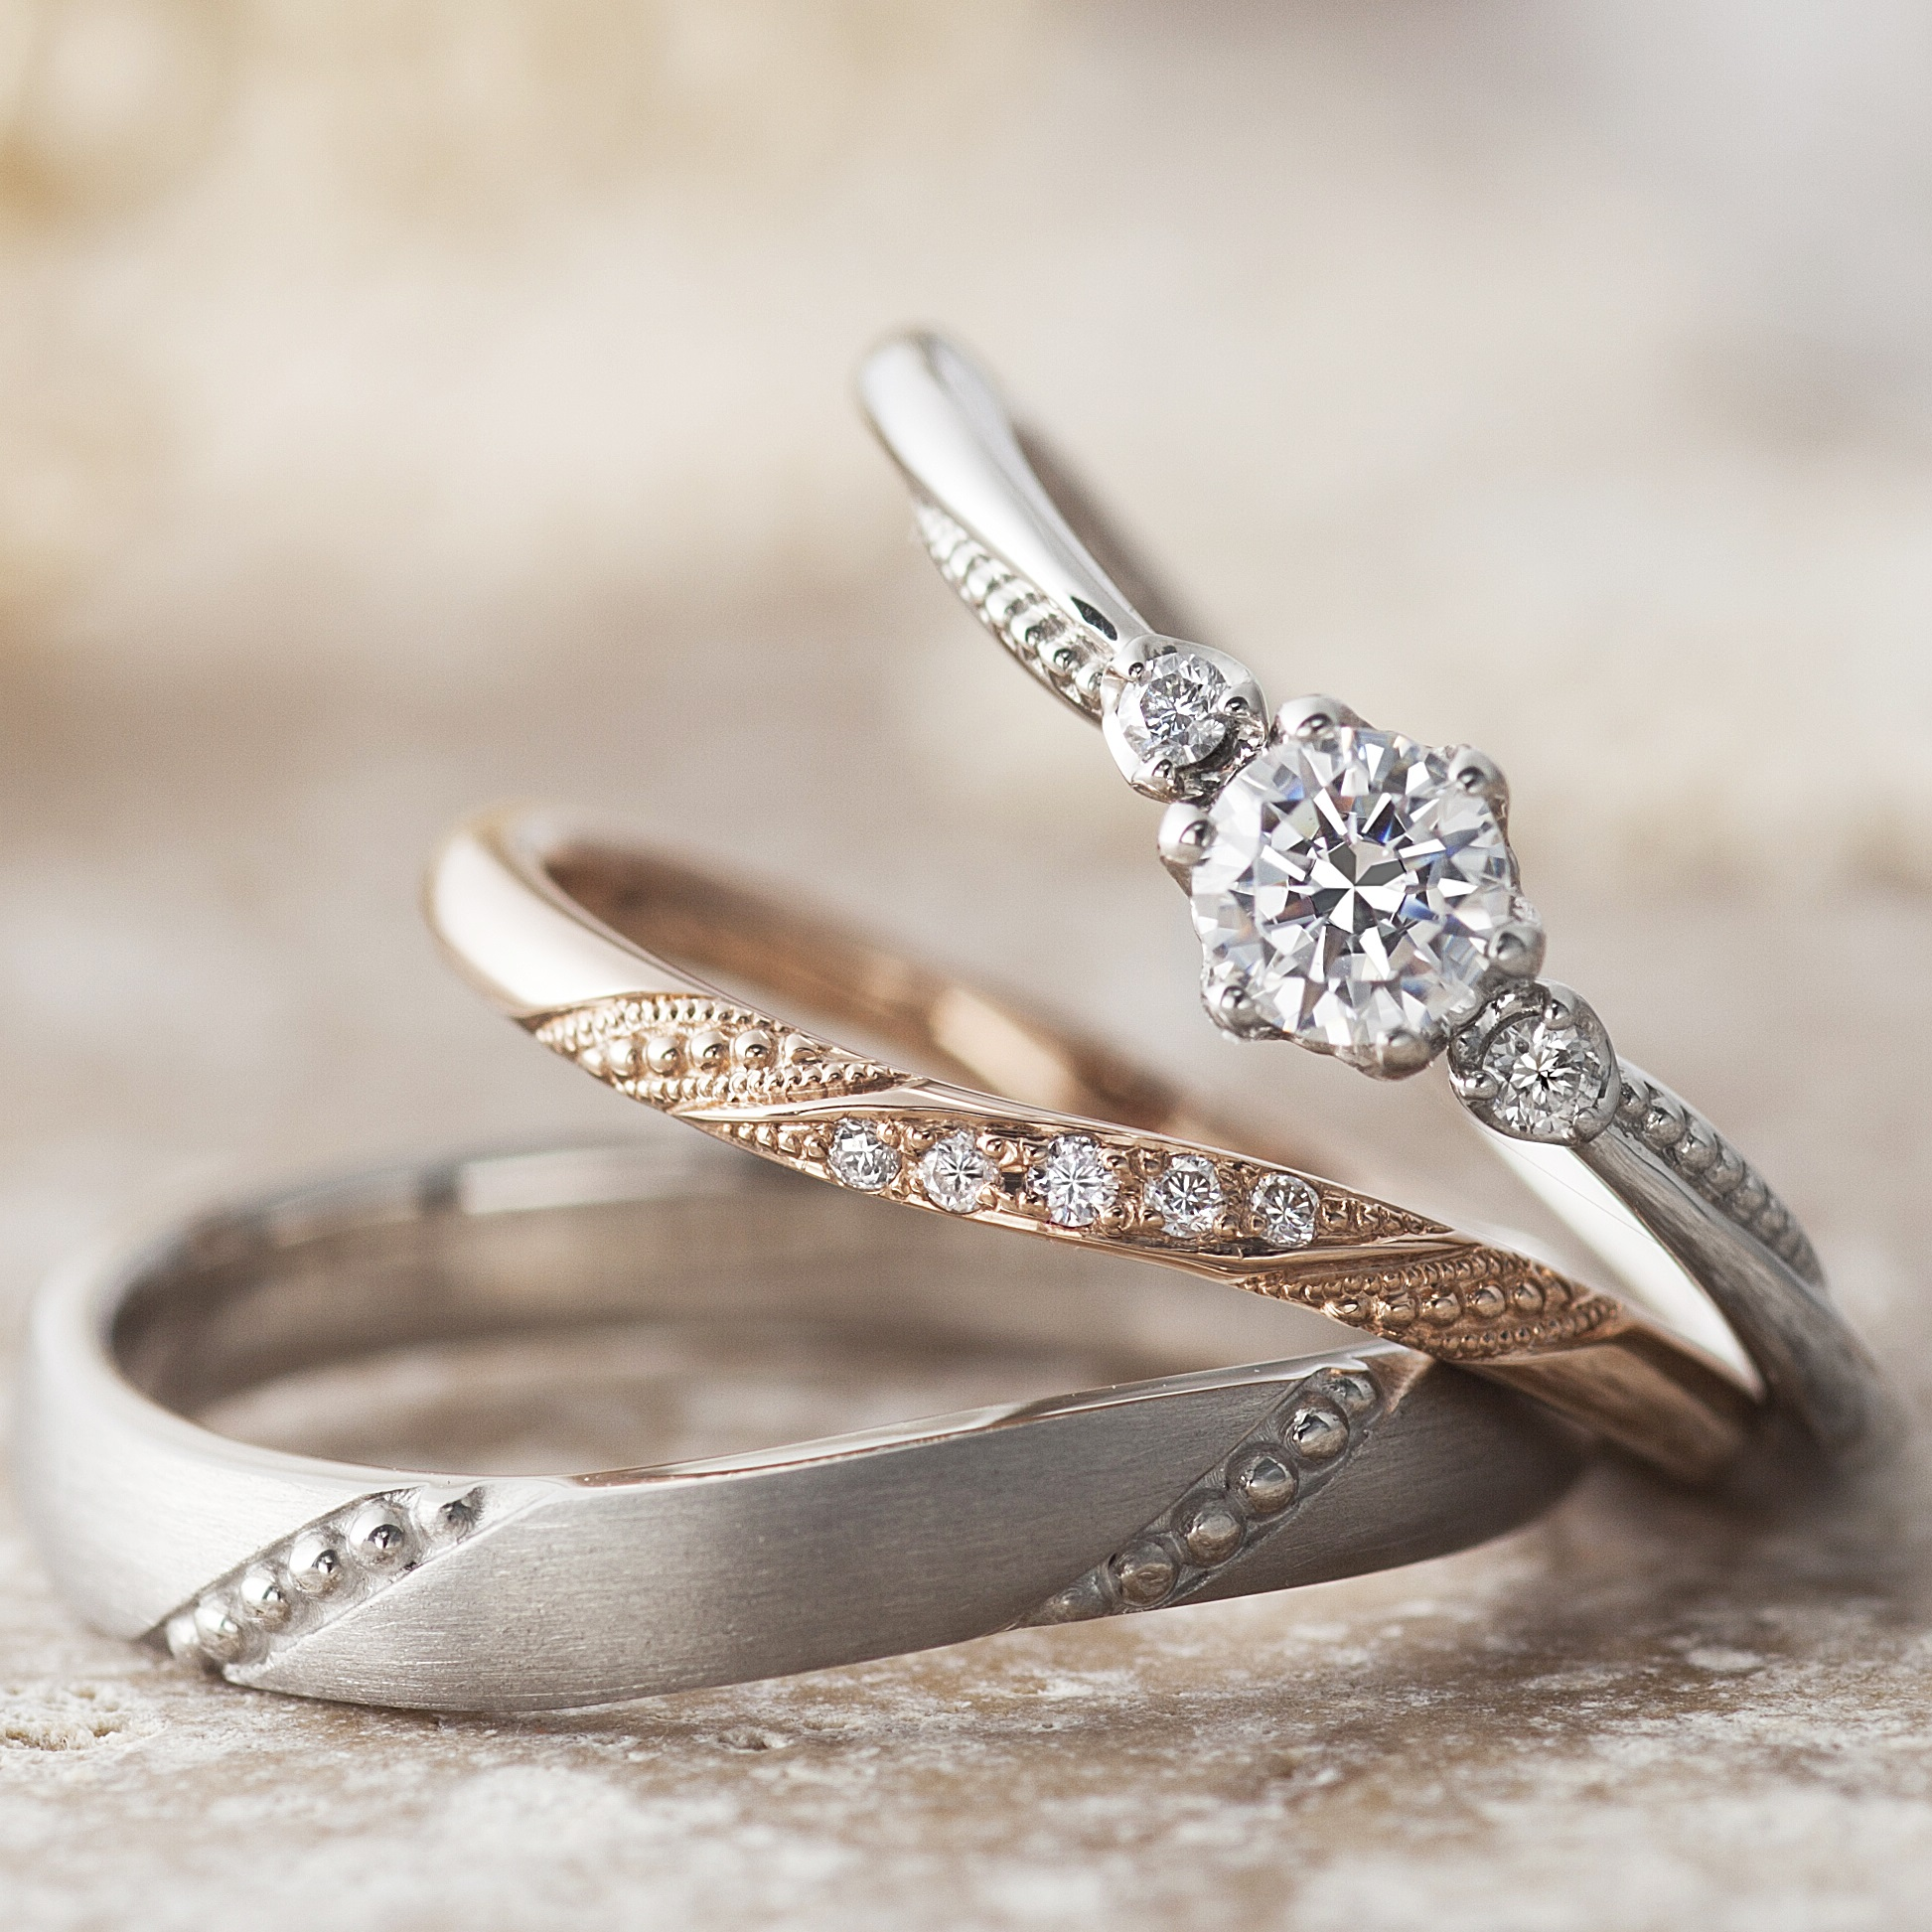 uk her ring rings gold for extremely nice inspiration wedding